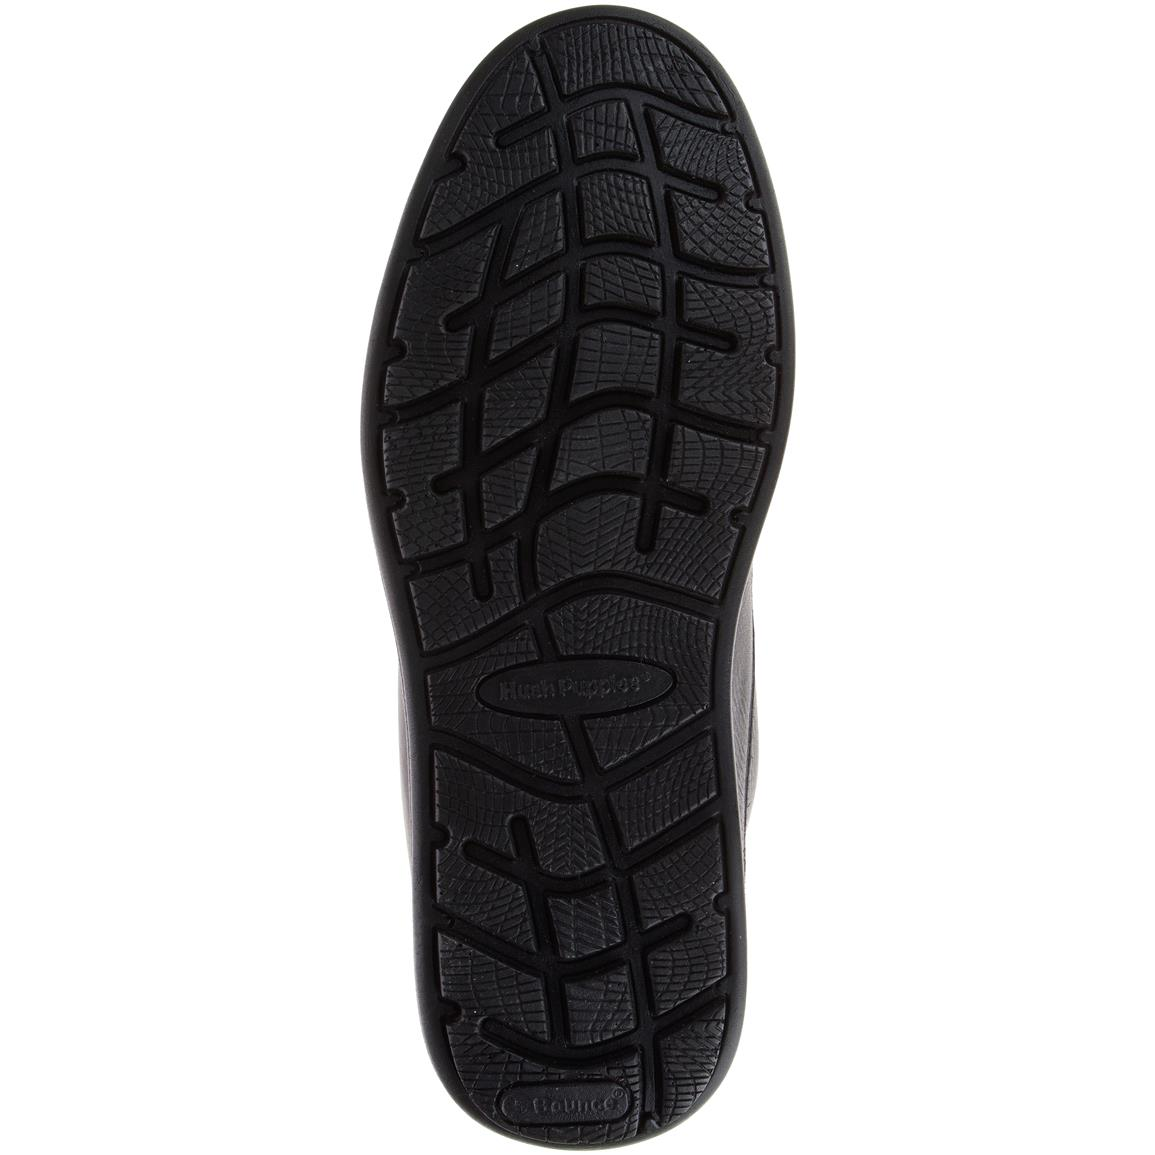 Bounce dual-density outsole releases energy with each step by absorbing and redistributing shock